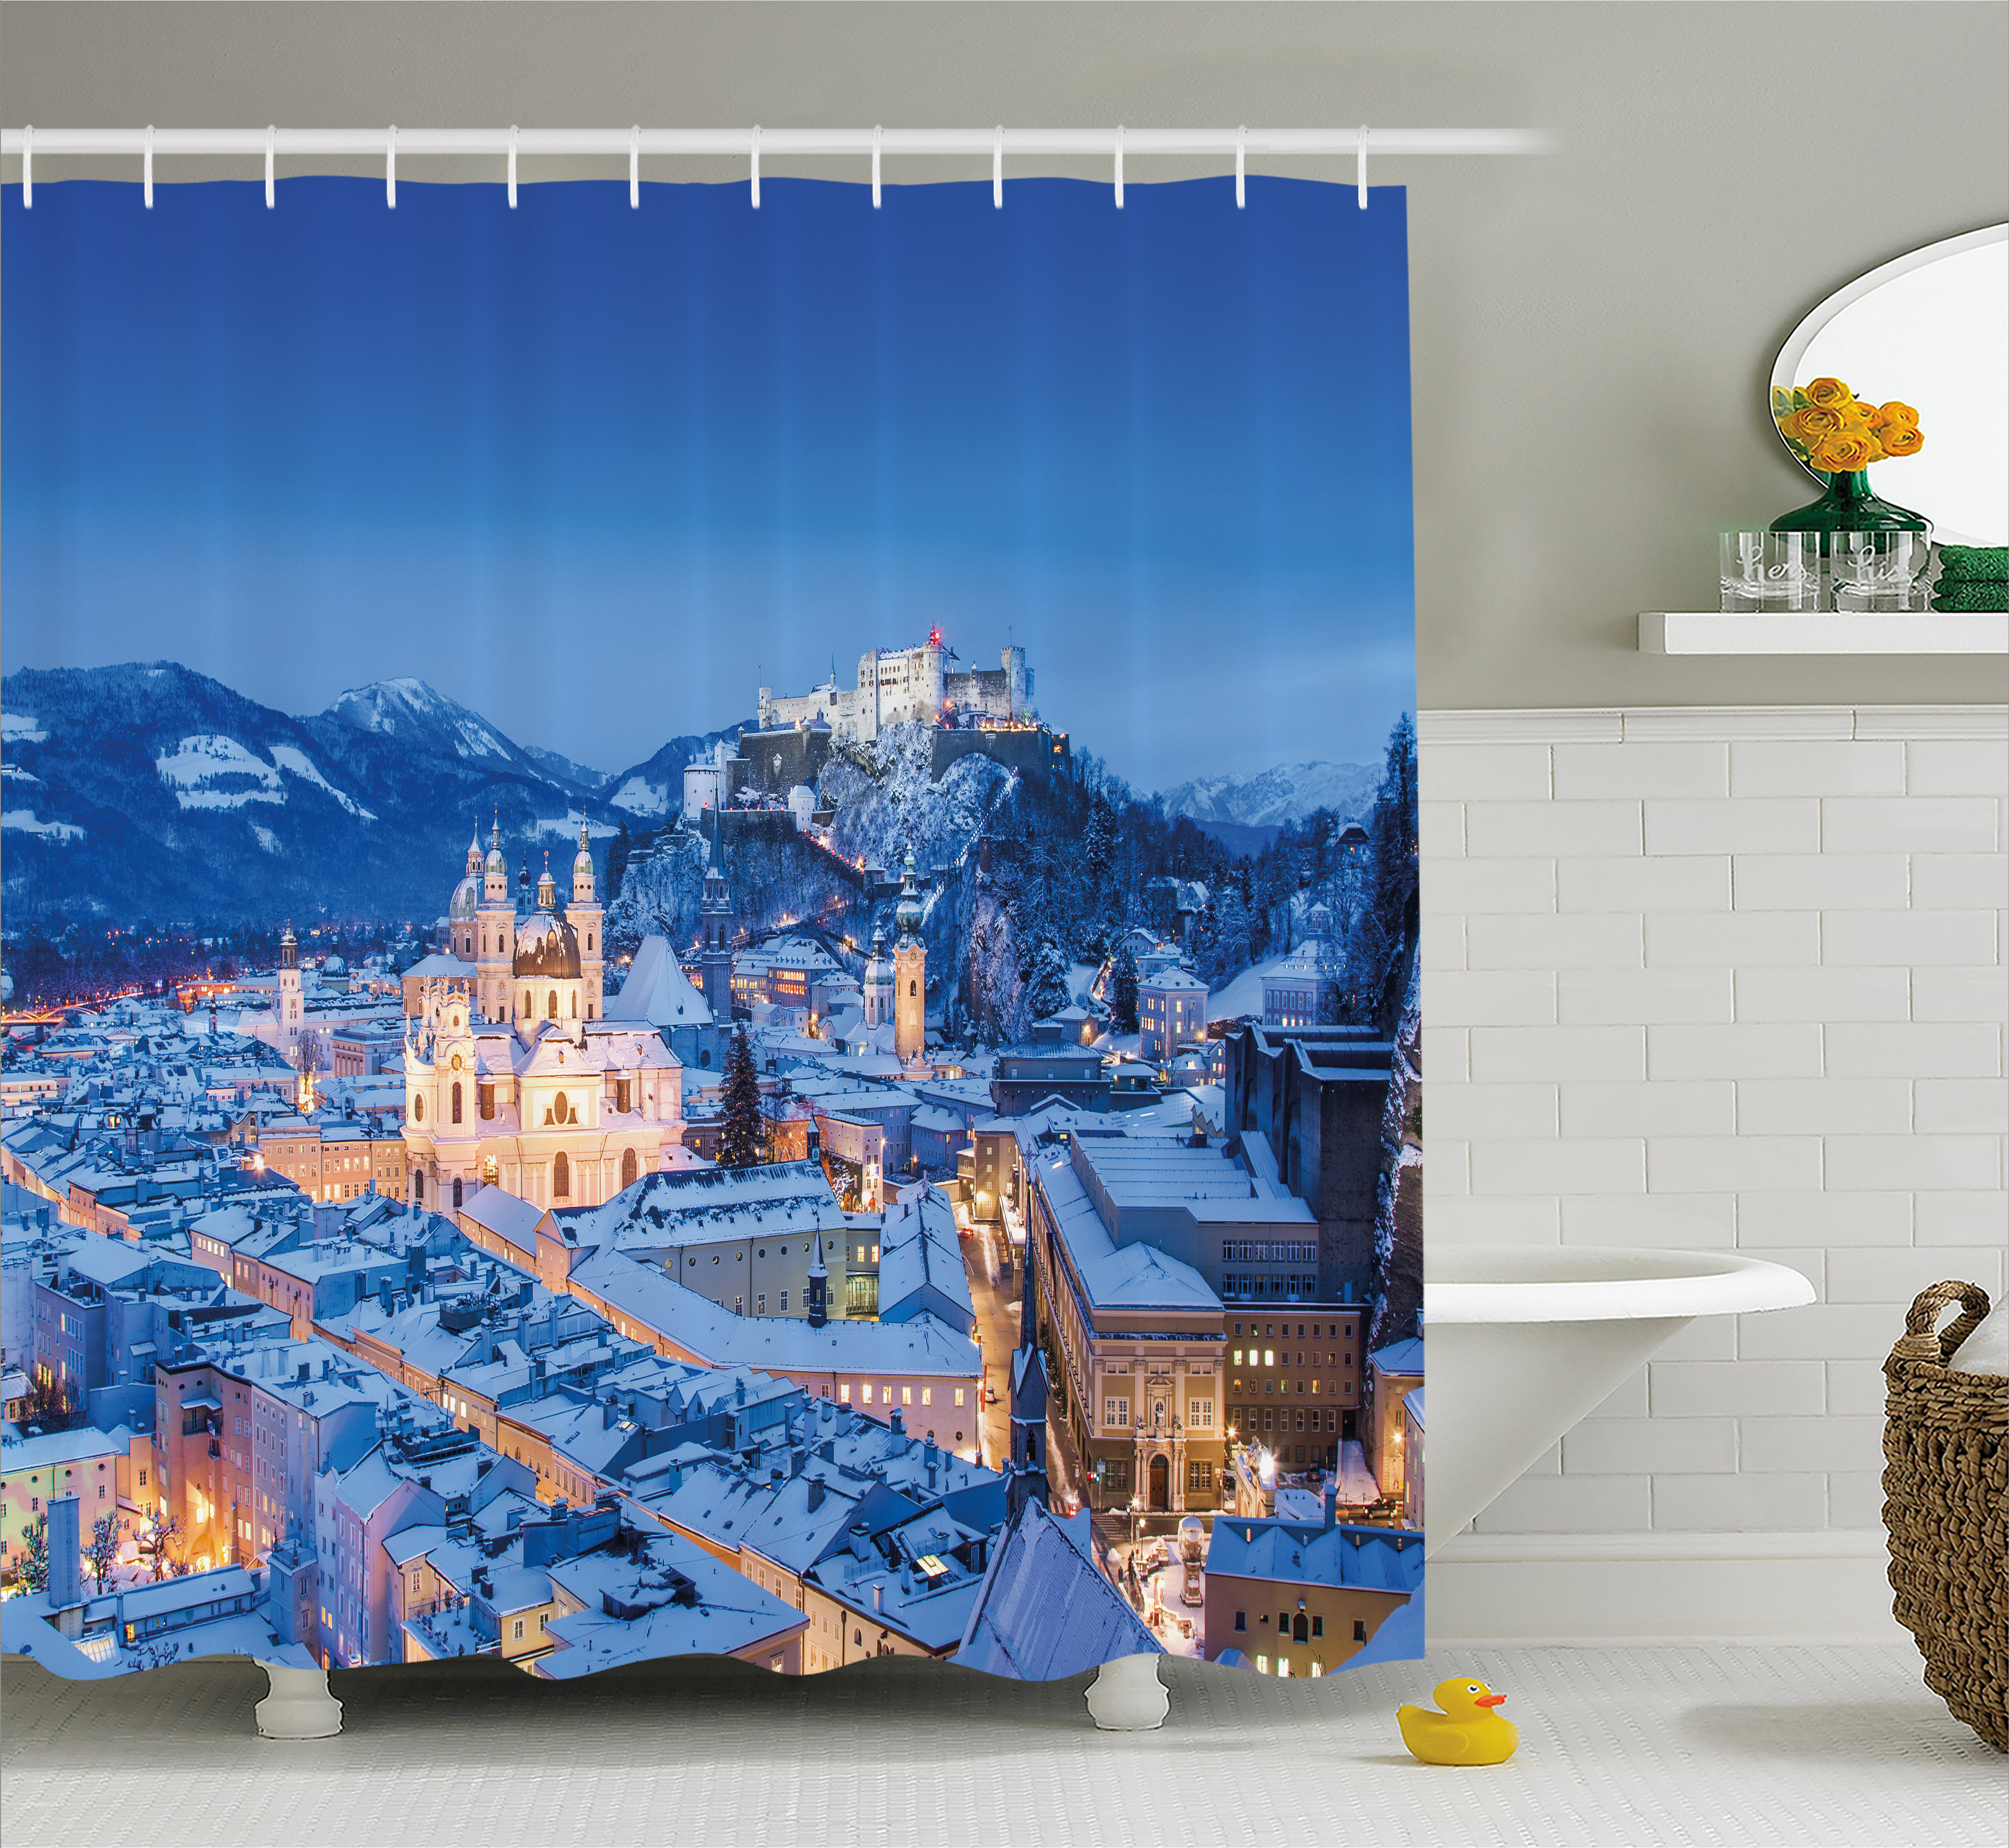 Winter Shower Curtain, View of the Historic City of Salzburg with Festung Hohensalzburg in Winter Austria, Fabric Bathroom Set with Hooks, 69W X 70L Inches, Blue Peach, by Ambesonne